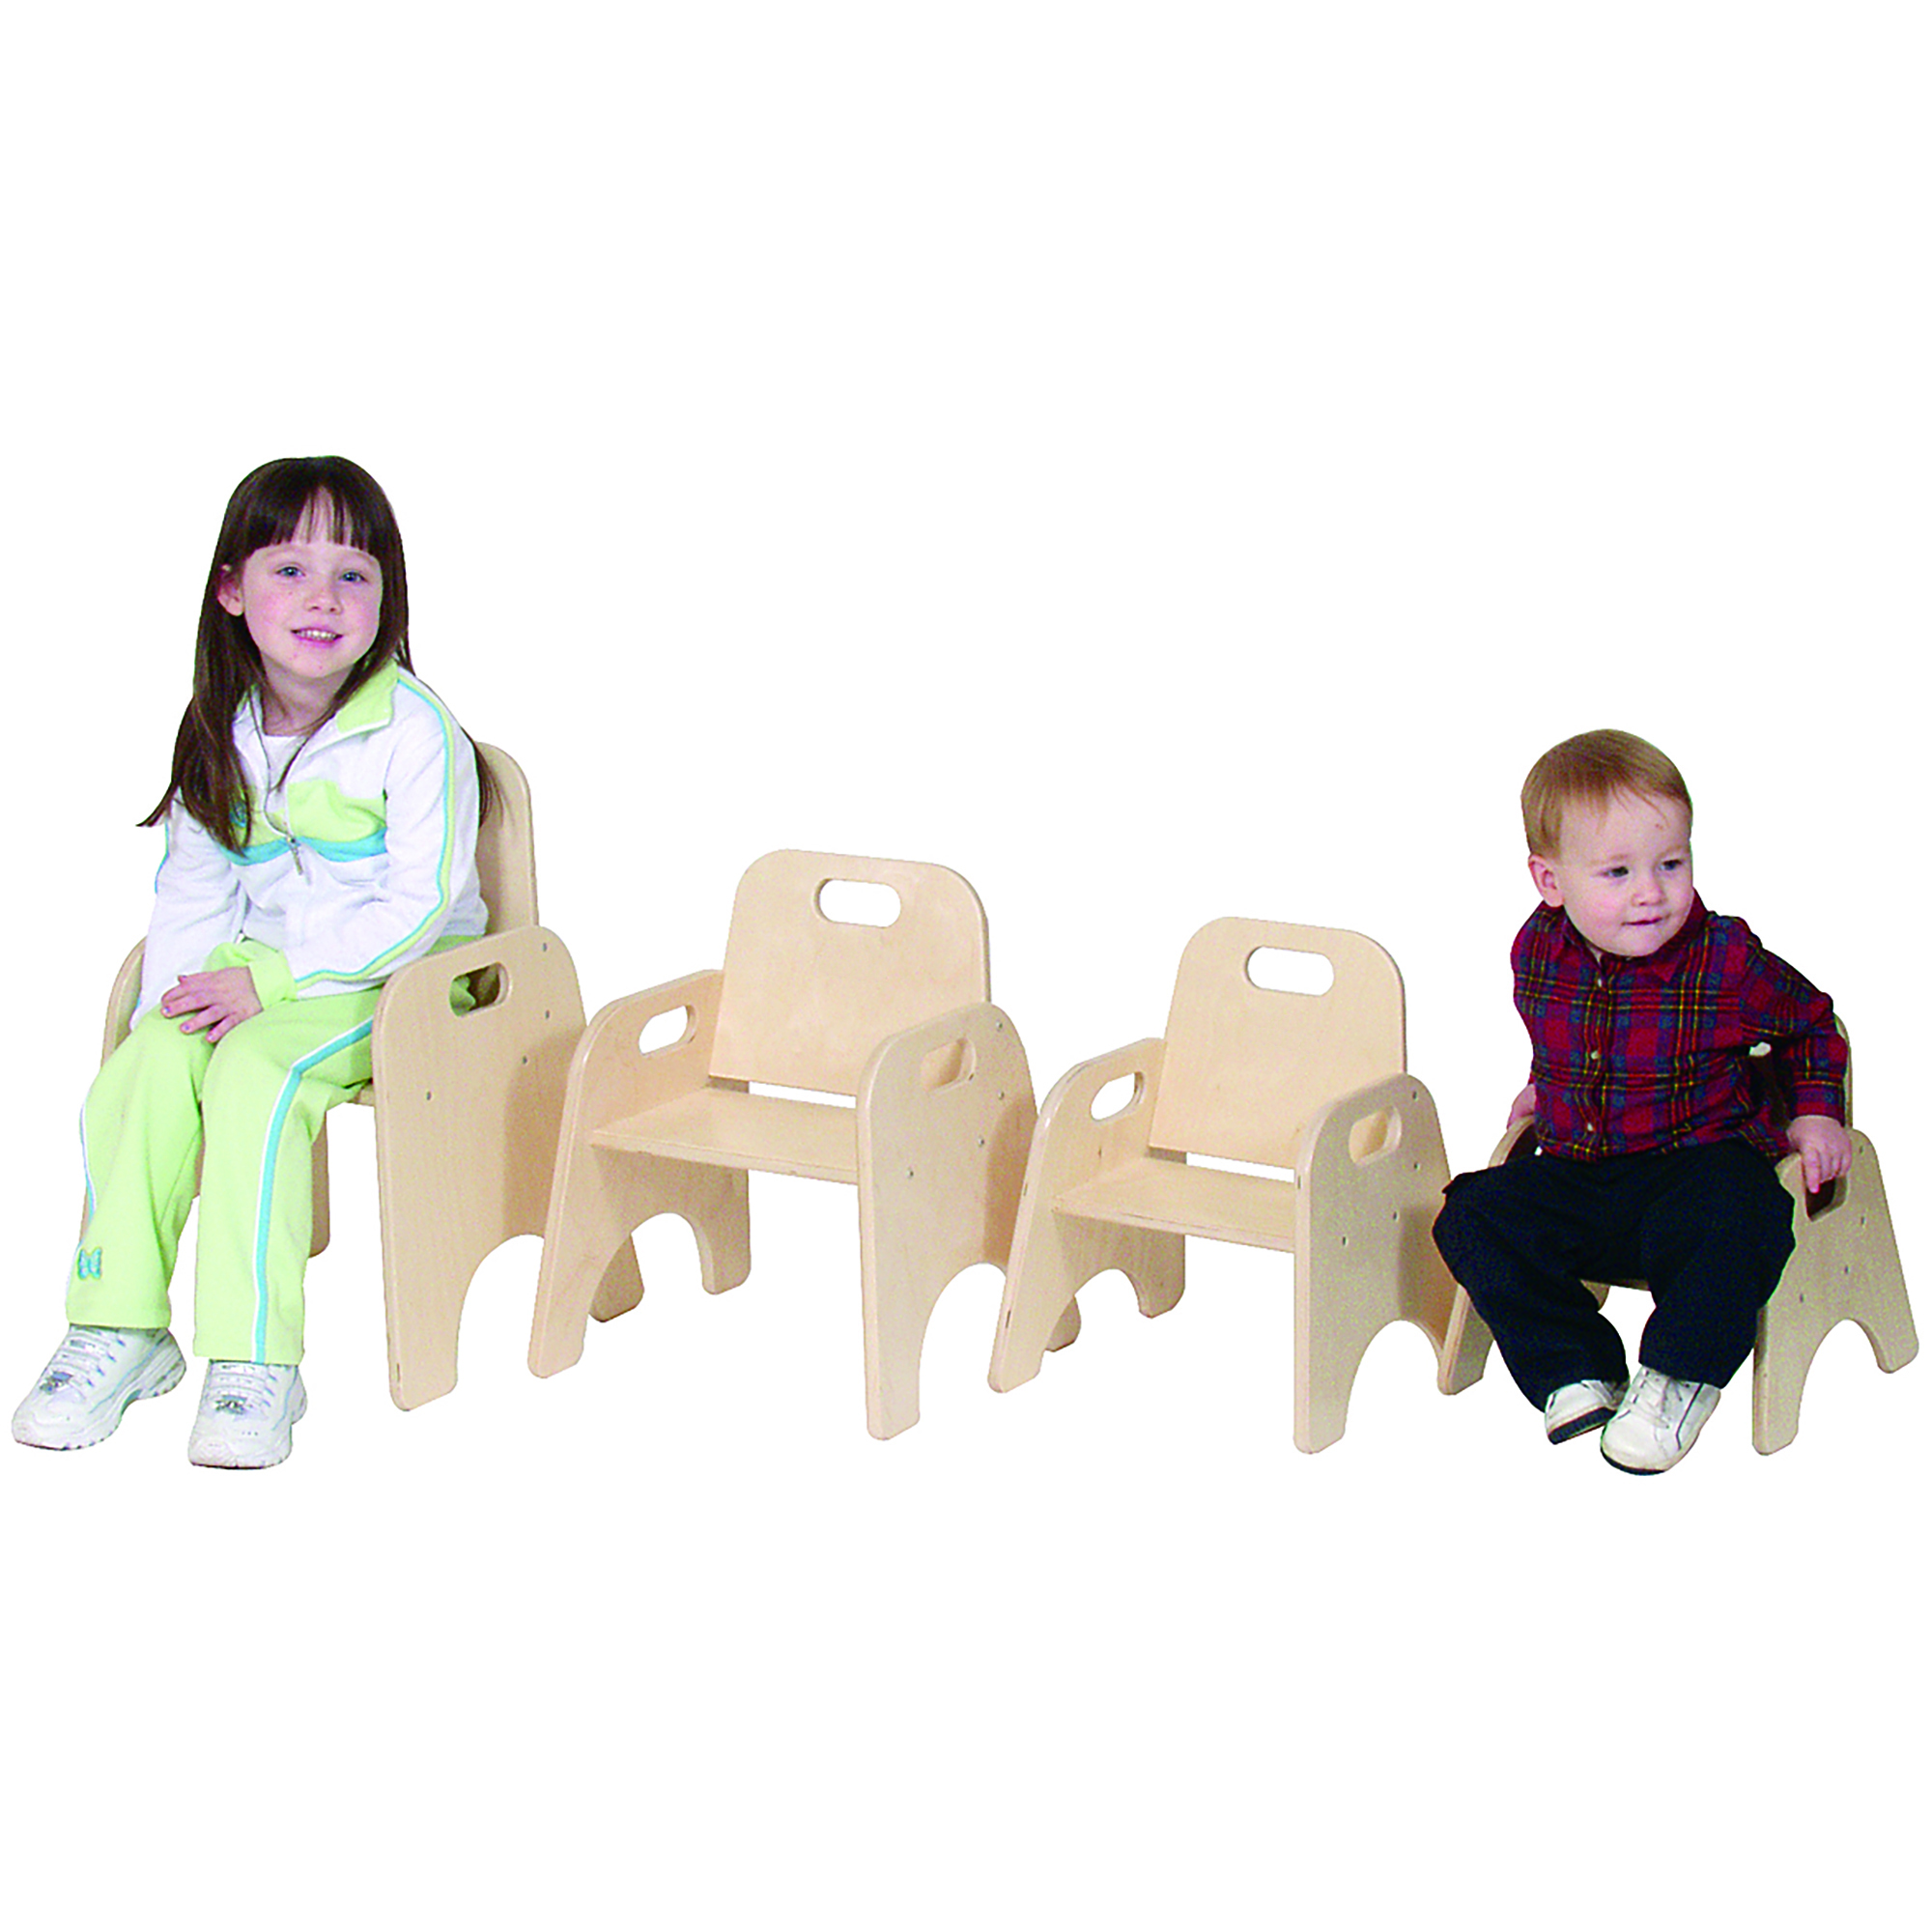 Flexible Seating Classroom Furniture for Toddlers Natural Tan Beige Childrens Factory Angeles Value Stack Kids Chair Preschool//Homeschool//Daycare Furniture 7